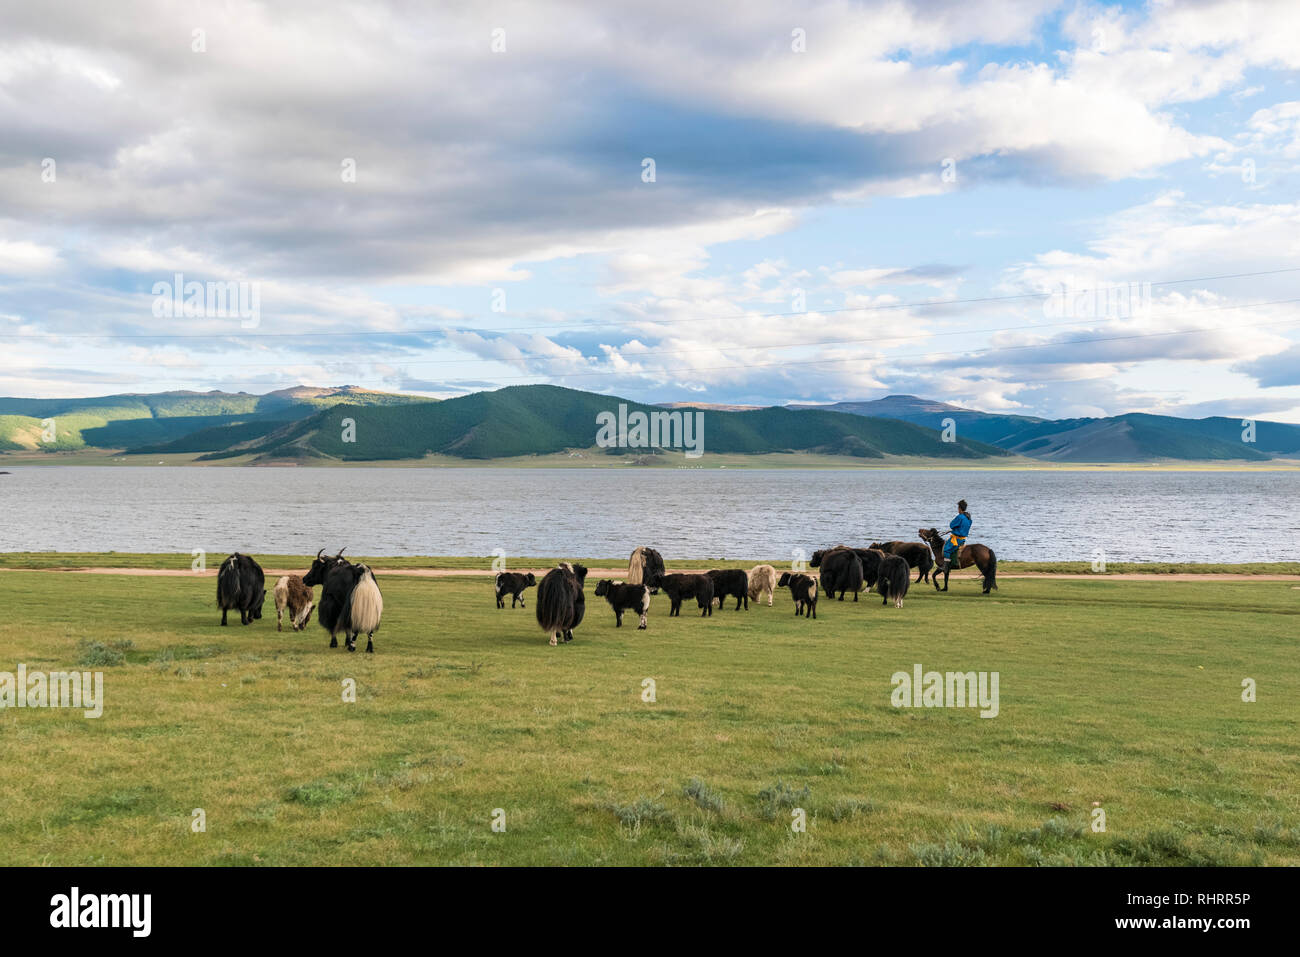 Shepherd on horse gathering his flock of yaks on the shores of White Lake. Tariat district, North Hangay province, Mongolia. - Stock Image